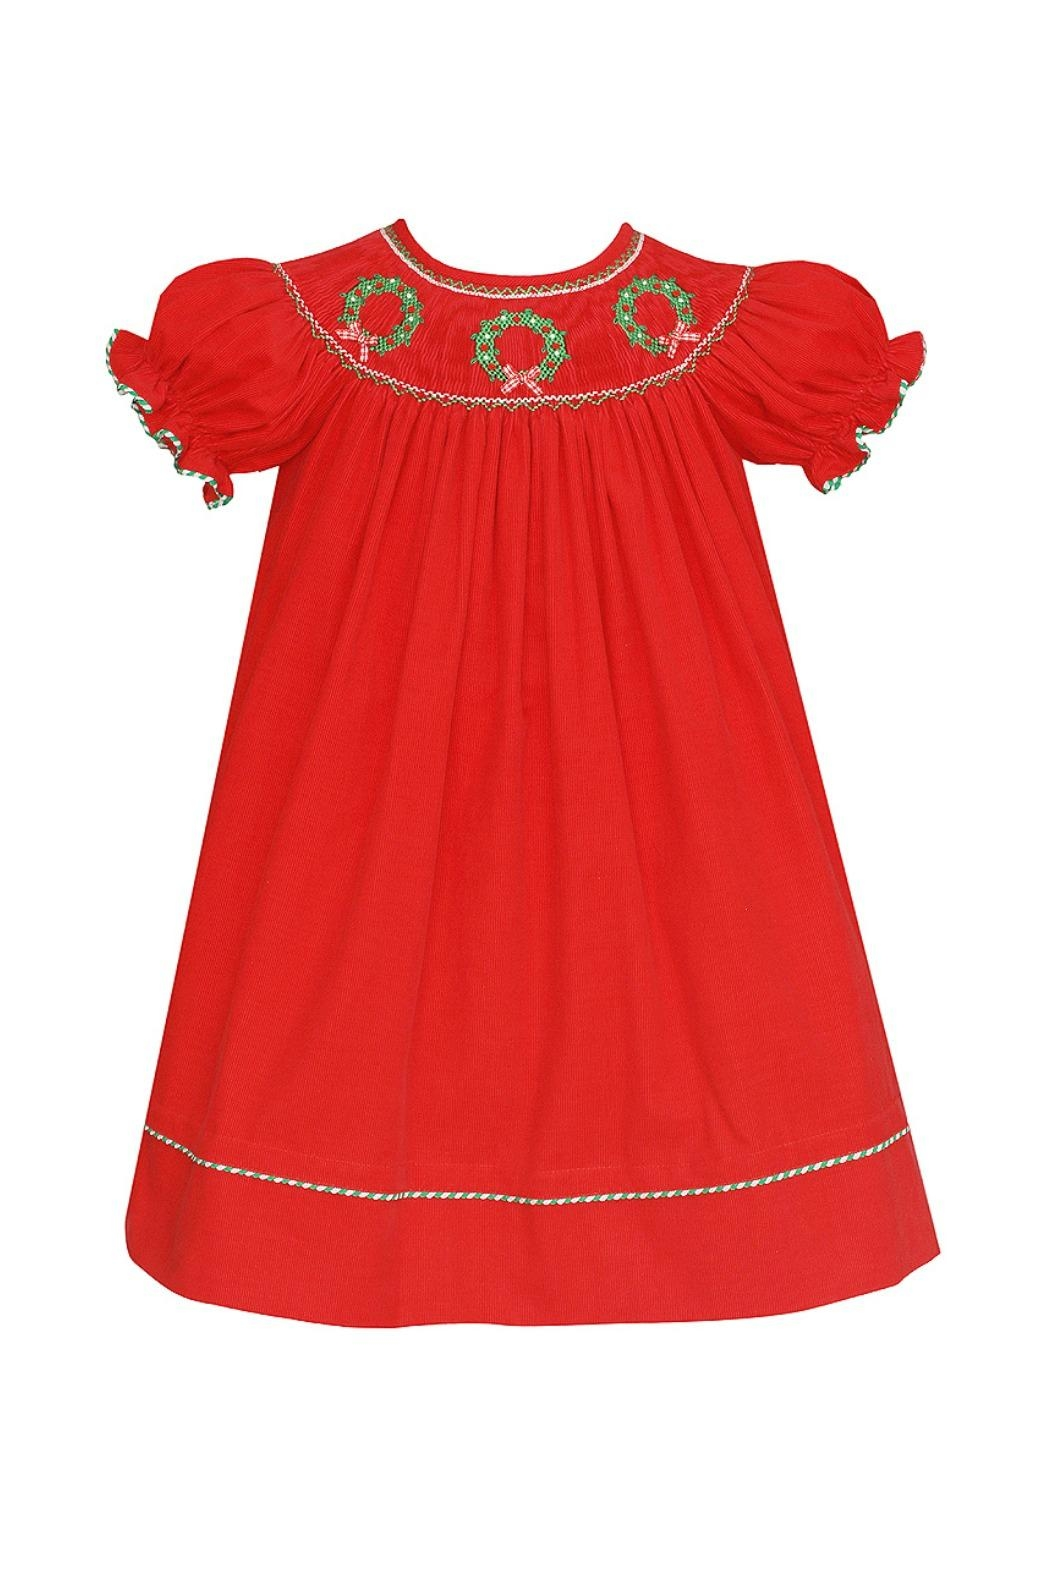 ANAVINI Red-Corduroy-Smocked-Christmas-Wreath-Bishop - Front Cropped Image